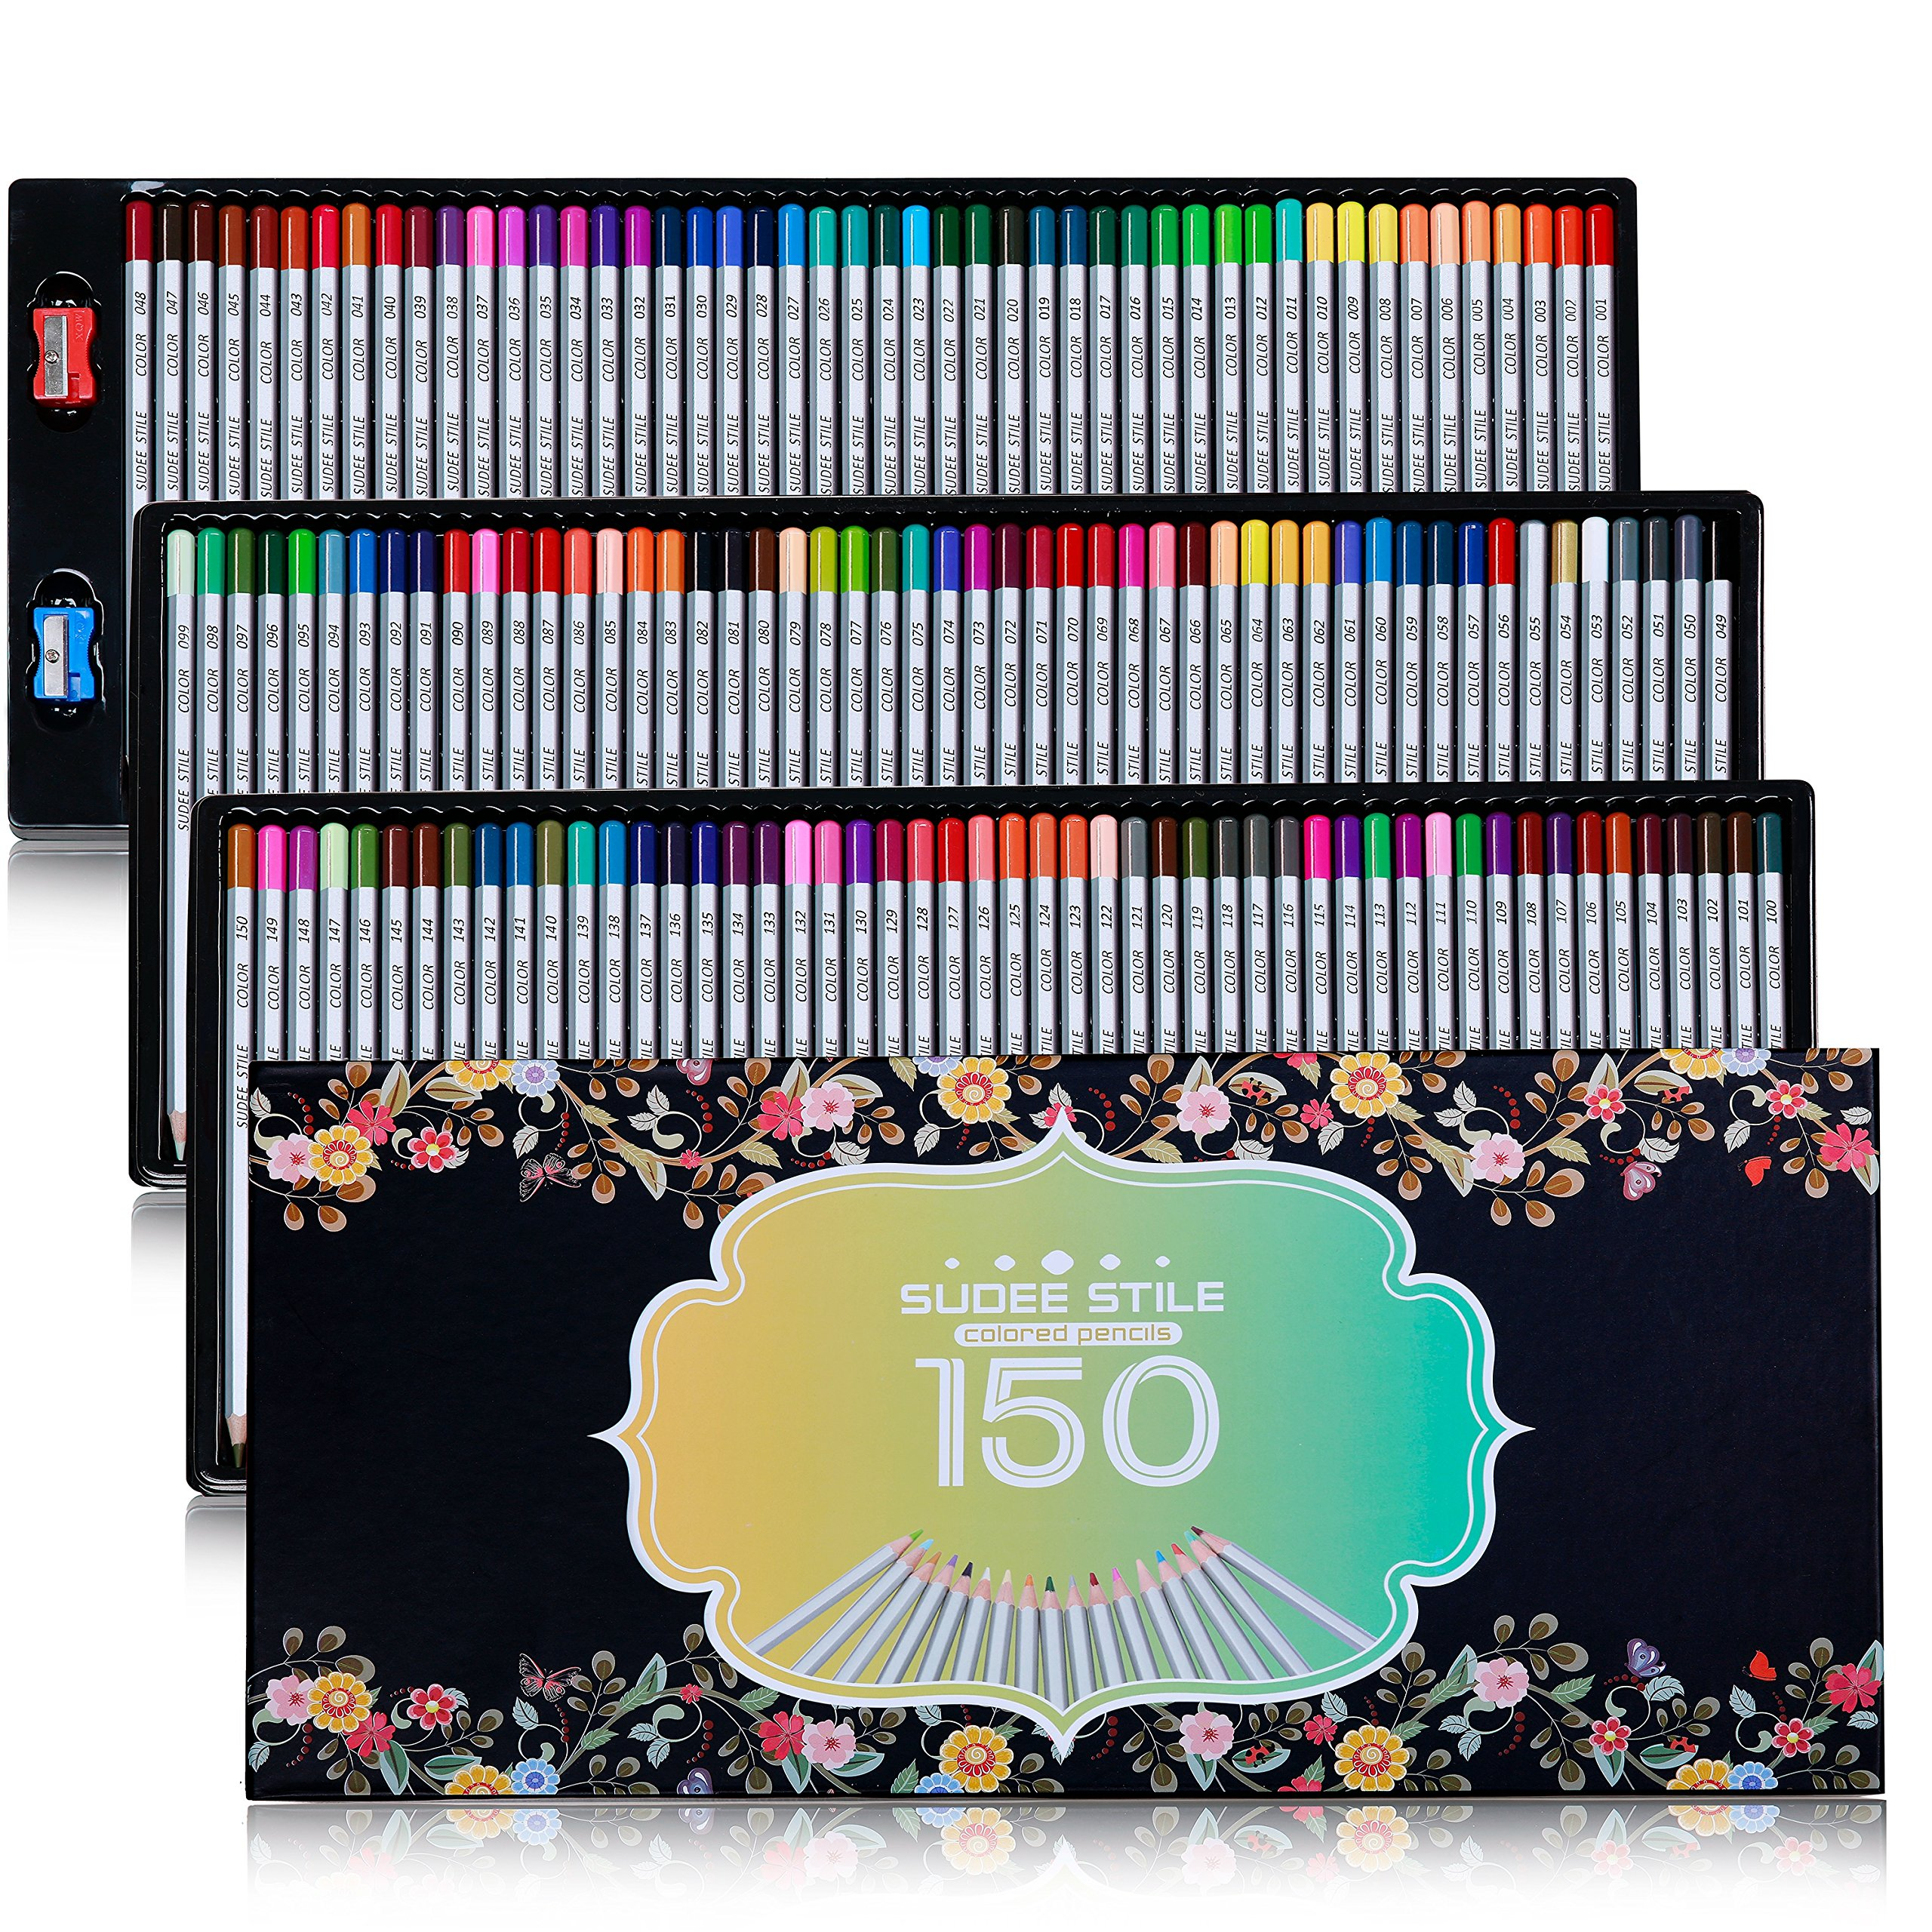 SUDEE STILE Colored Pencils 150 Unique Colors (No Duplicates) Art Drawing Colored Pencils Set with Case Sharpener by SUDEE STILE